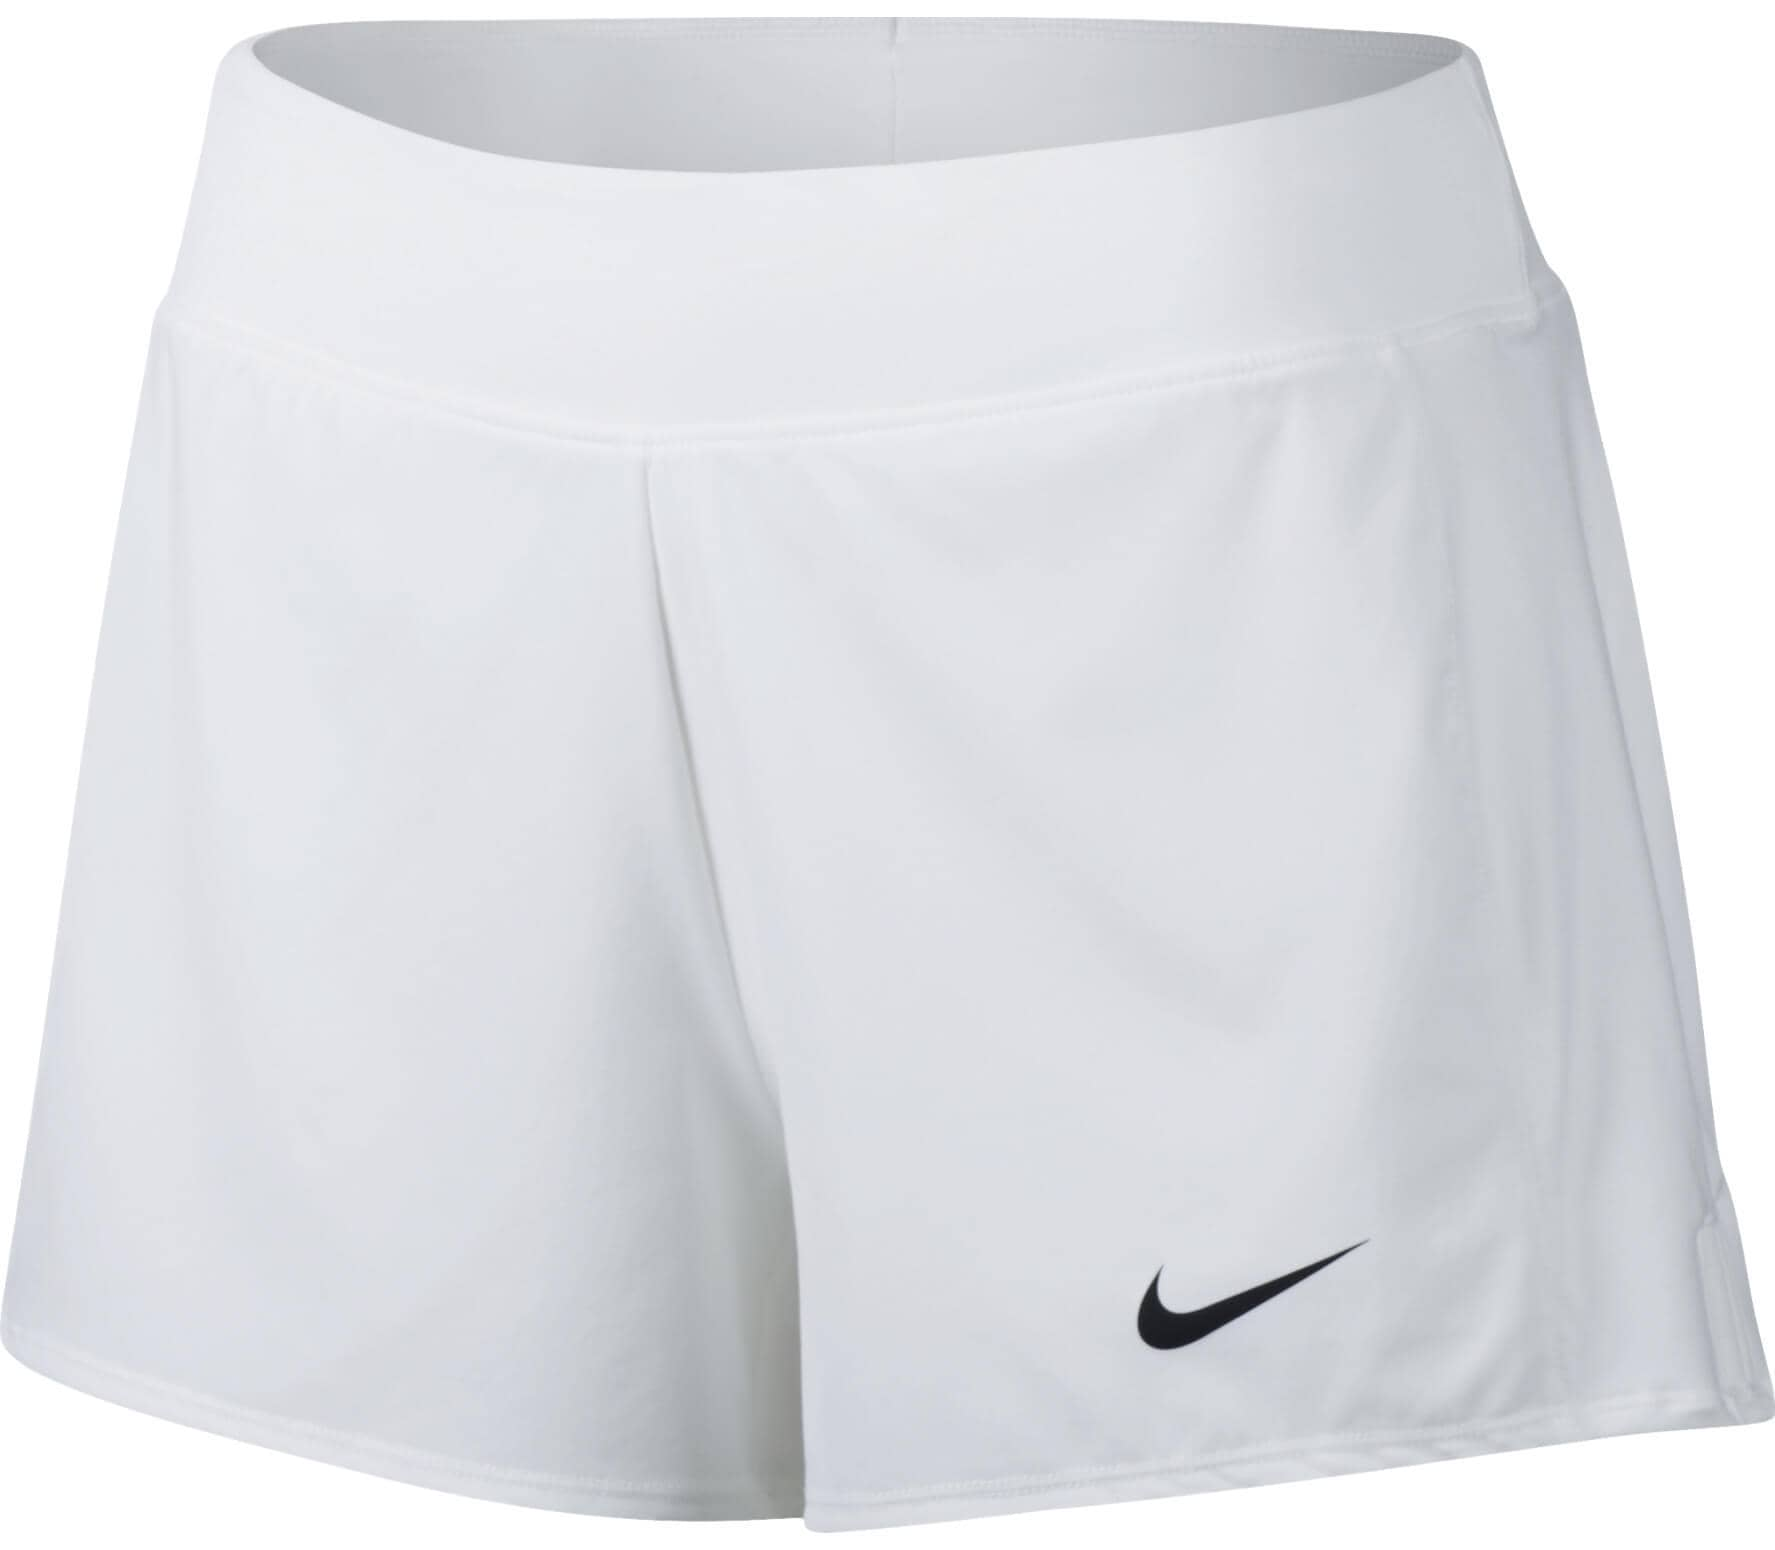 b34221473829 Nike - Court Flex Pure women s tennis shorts (white black) - buy it ...